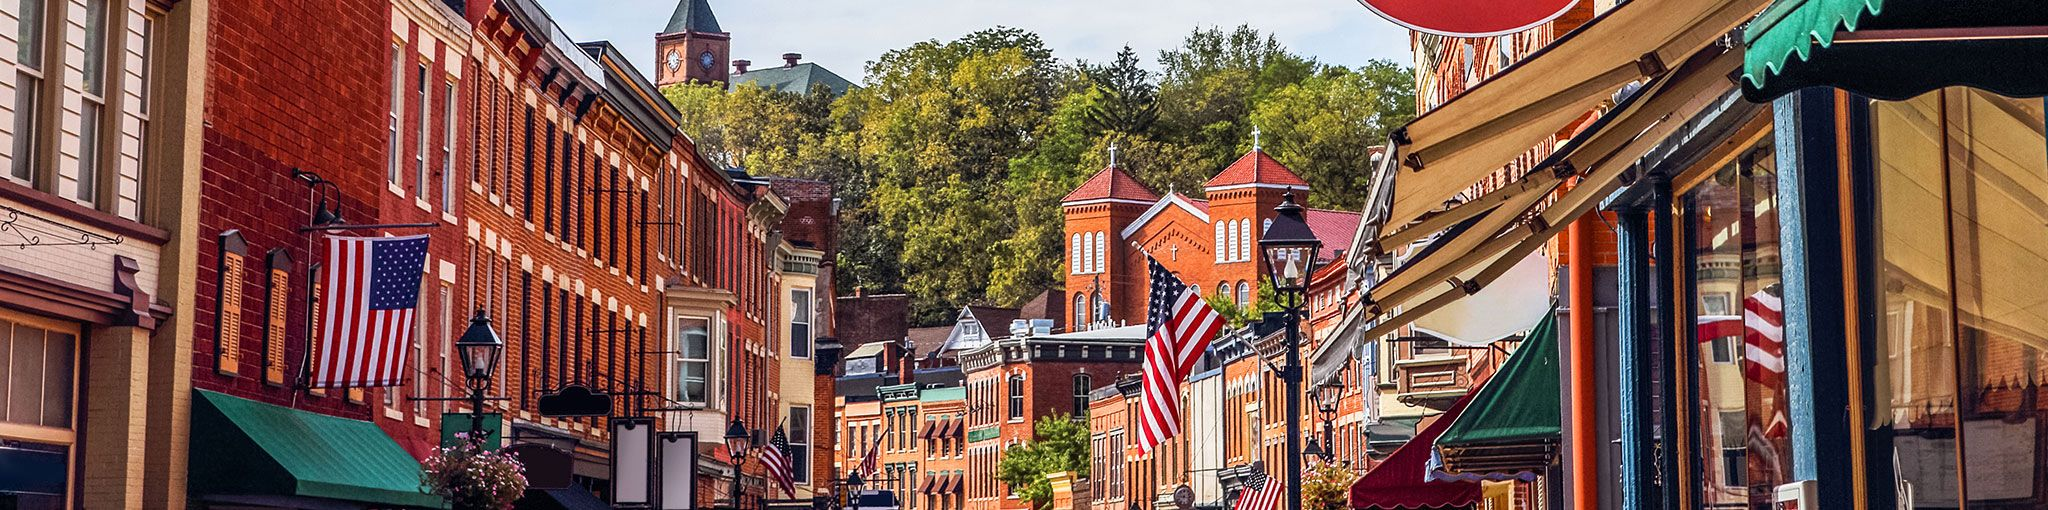 Small town street lined with brick buildings and American flags